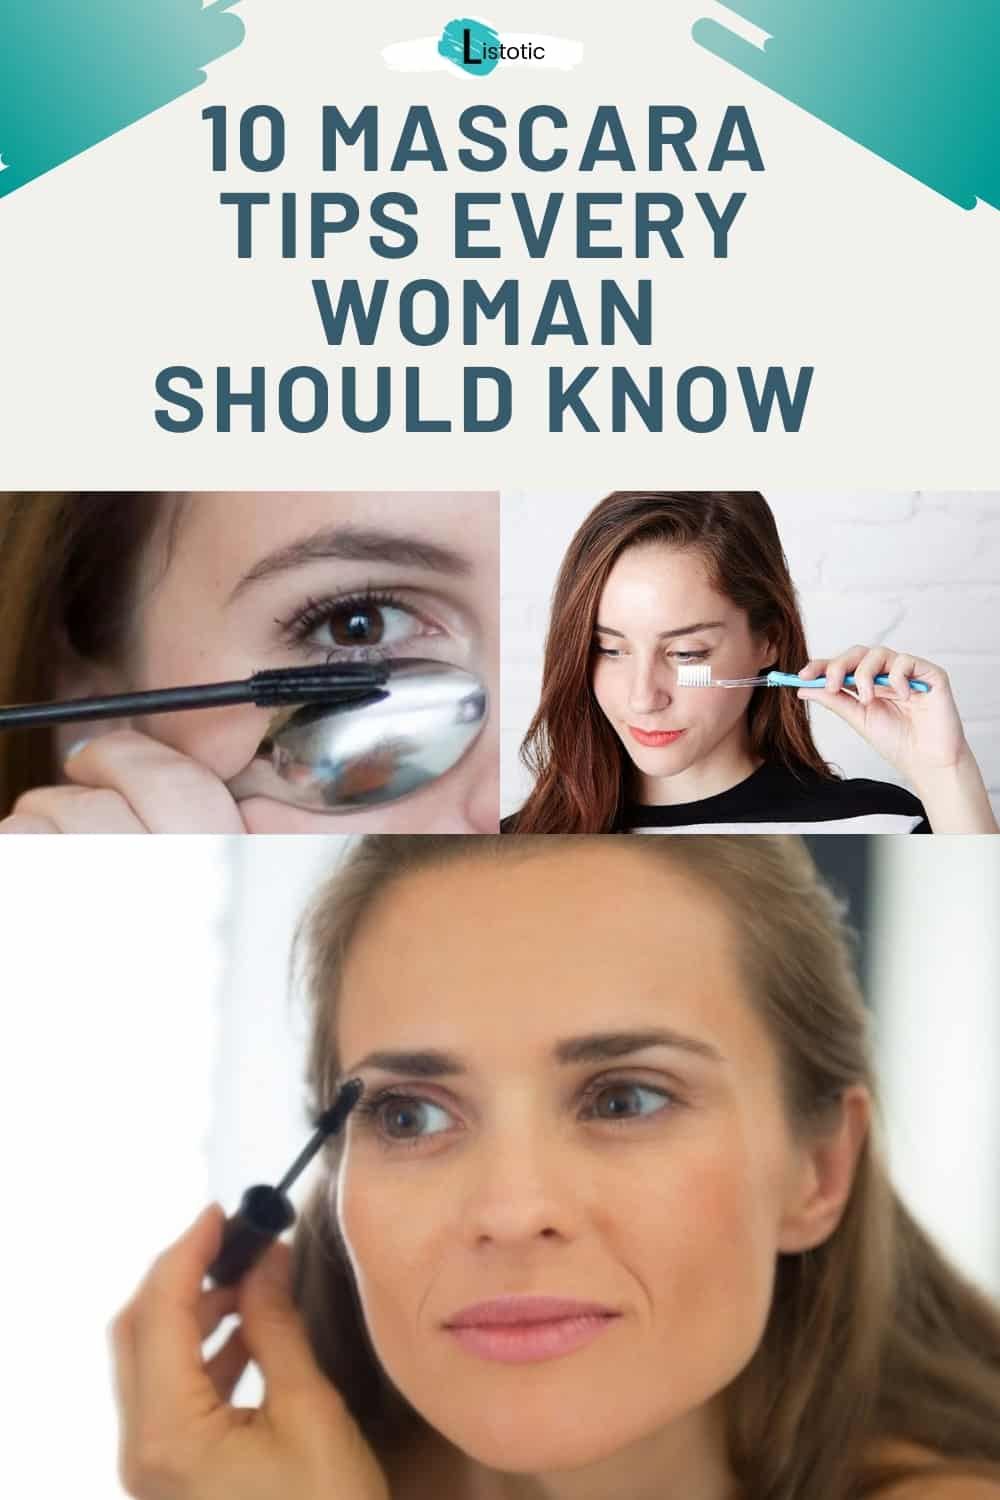 how to apply mascara and mascara tips for women applying makeup